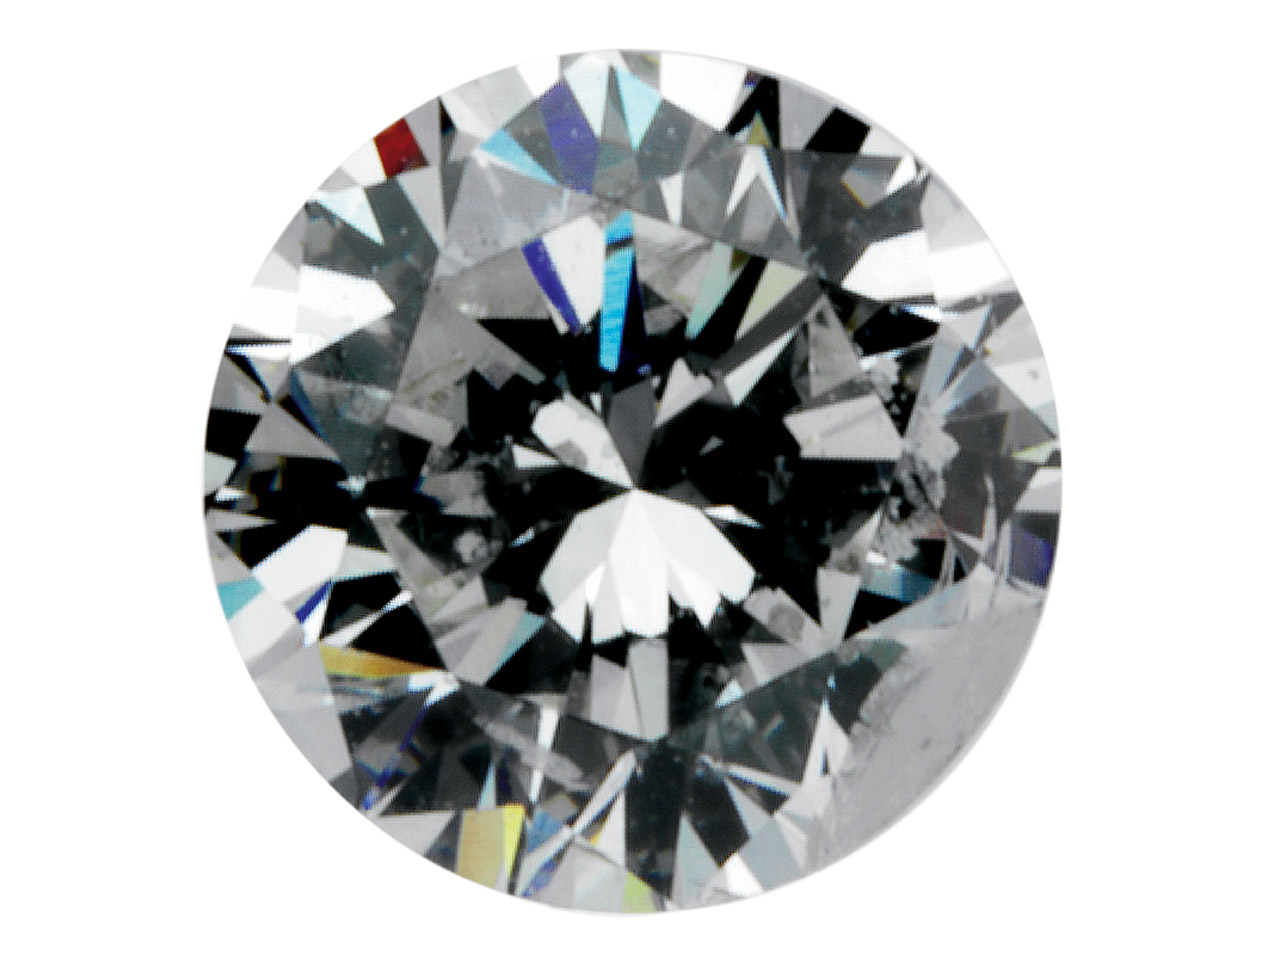 Diamond, Round, H-i/p2, 6pt/2.3mm